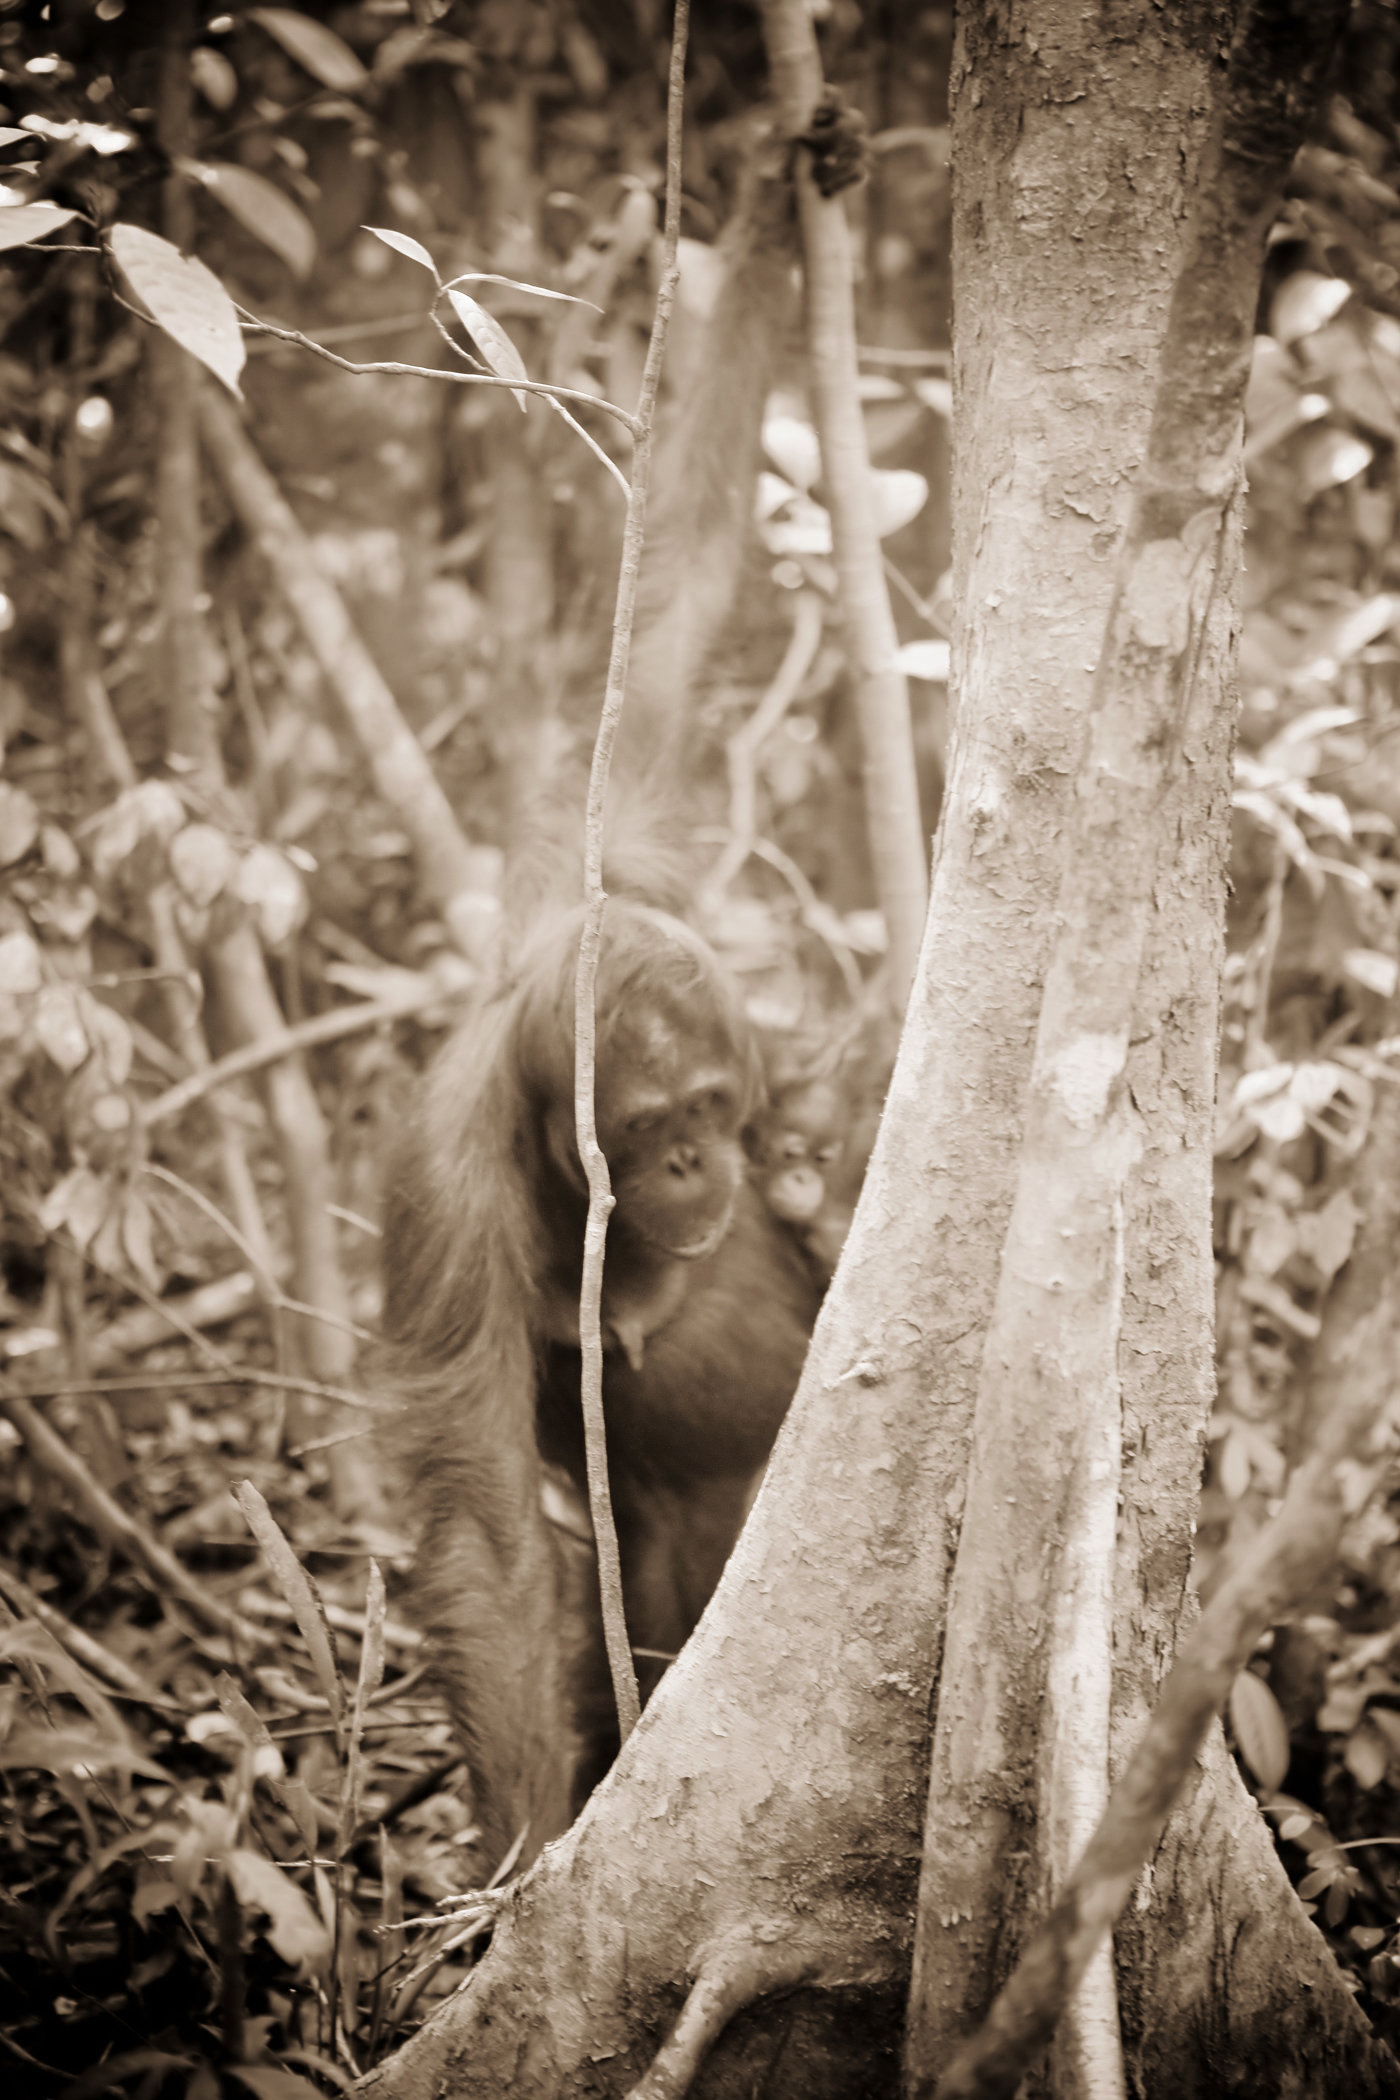 Mom and Baby Orangutans III